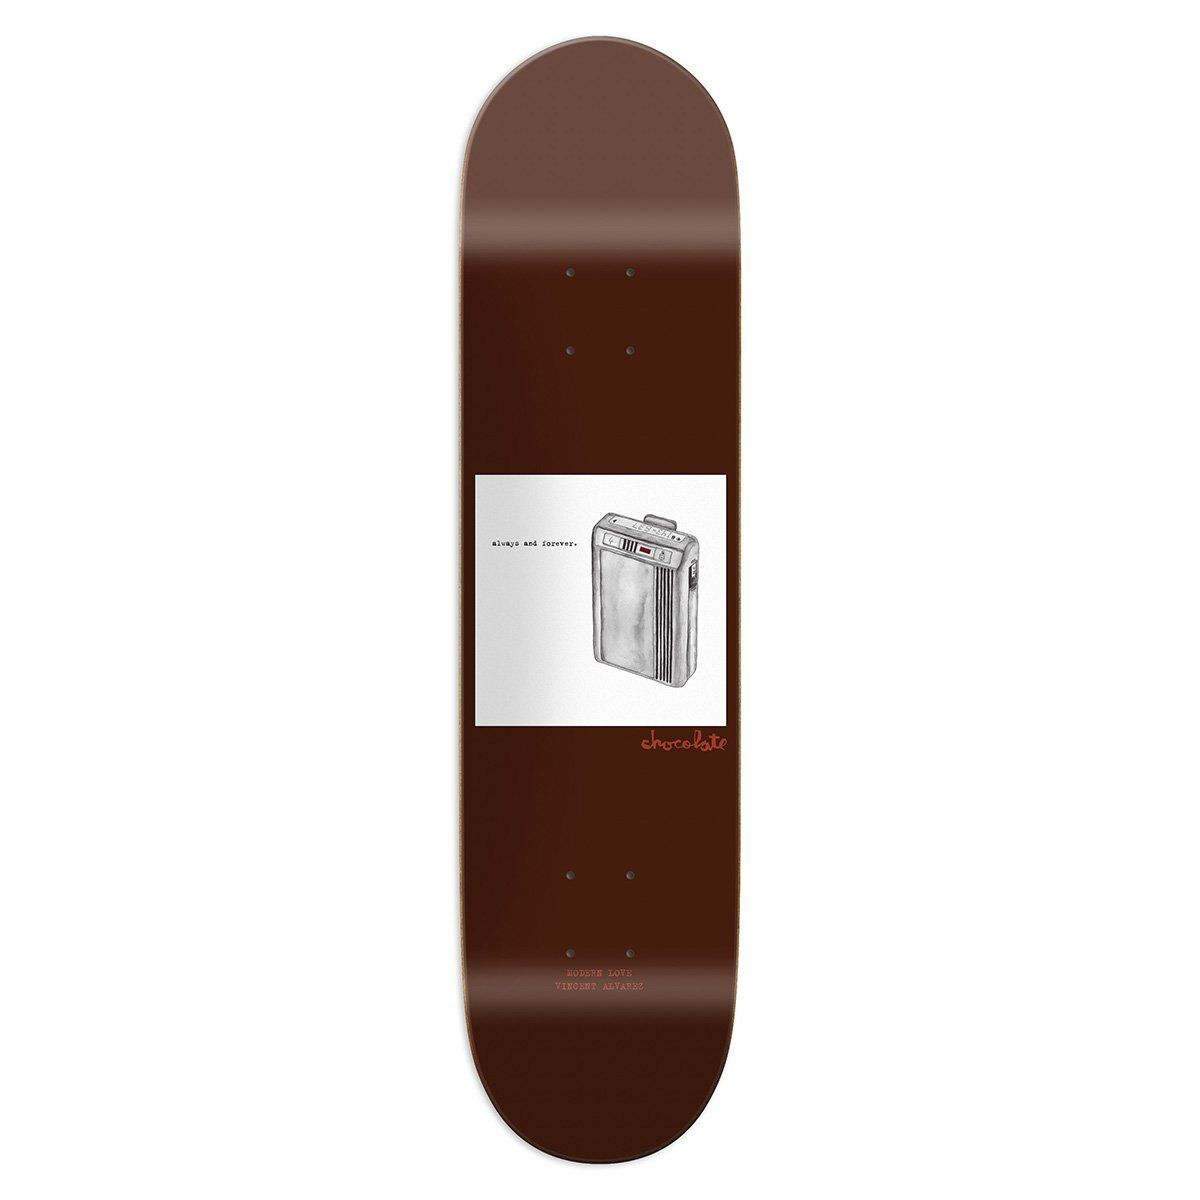 Chocolate Skateboards Modern Love Modern Love Chocolate Skateboards Modern